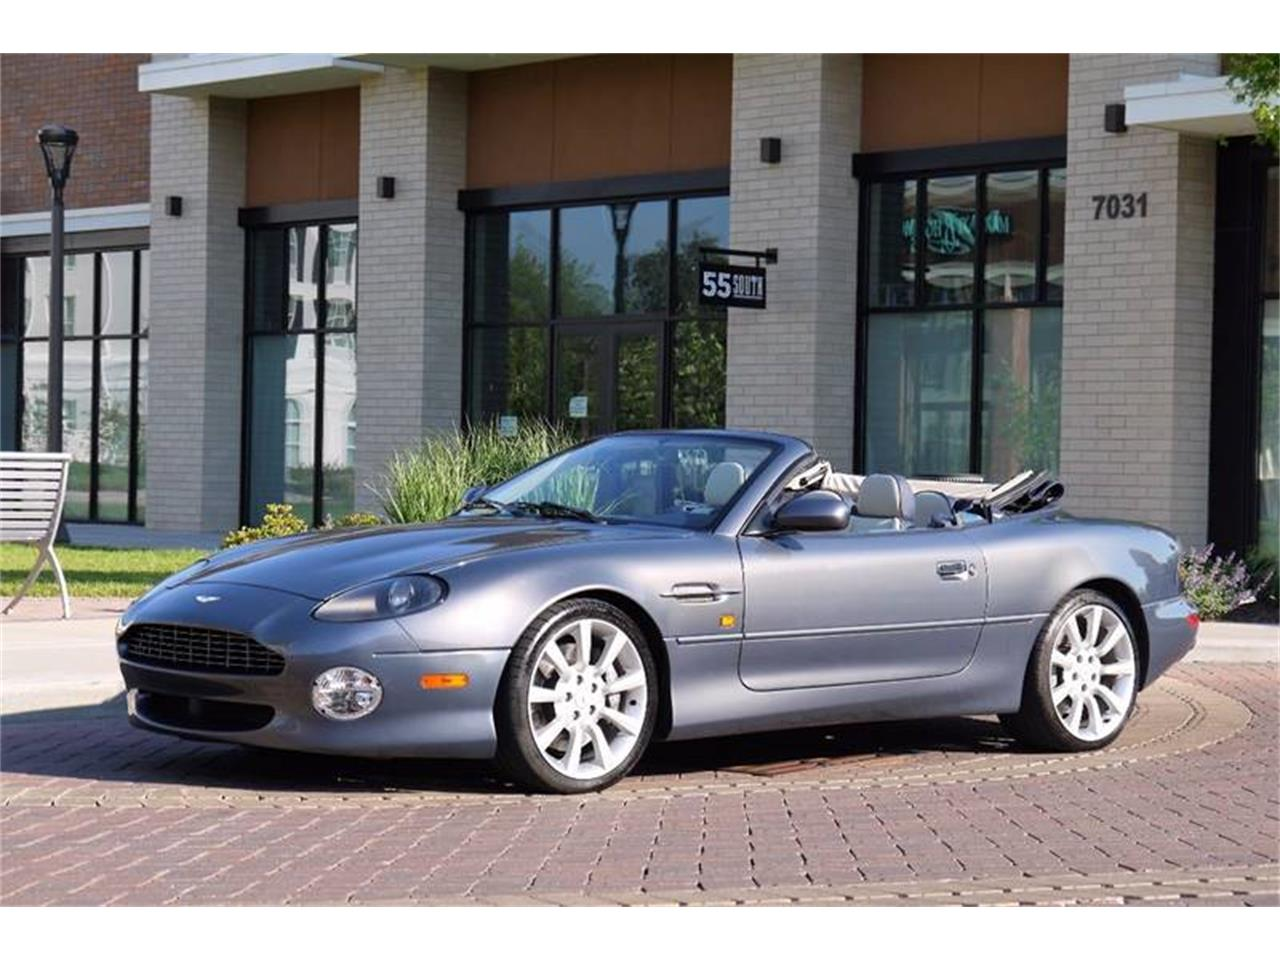 Large Picture of '03 DB7 located in Brentwood Tennessee Auction Vehicle Offered by Arde Motorcars - L79D